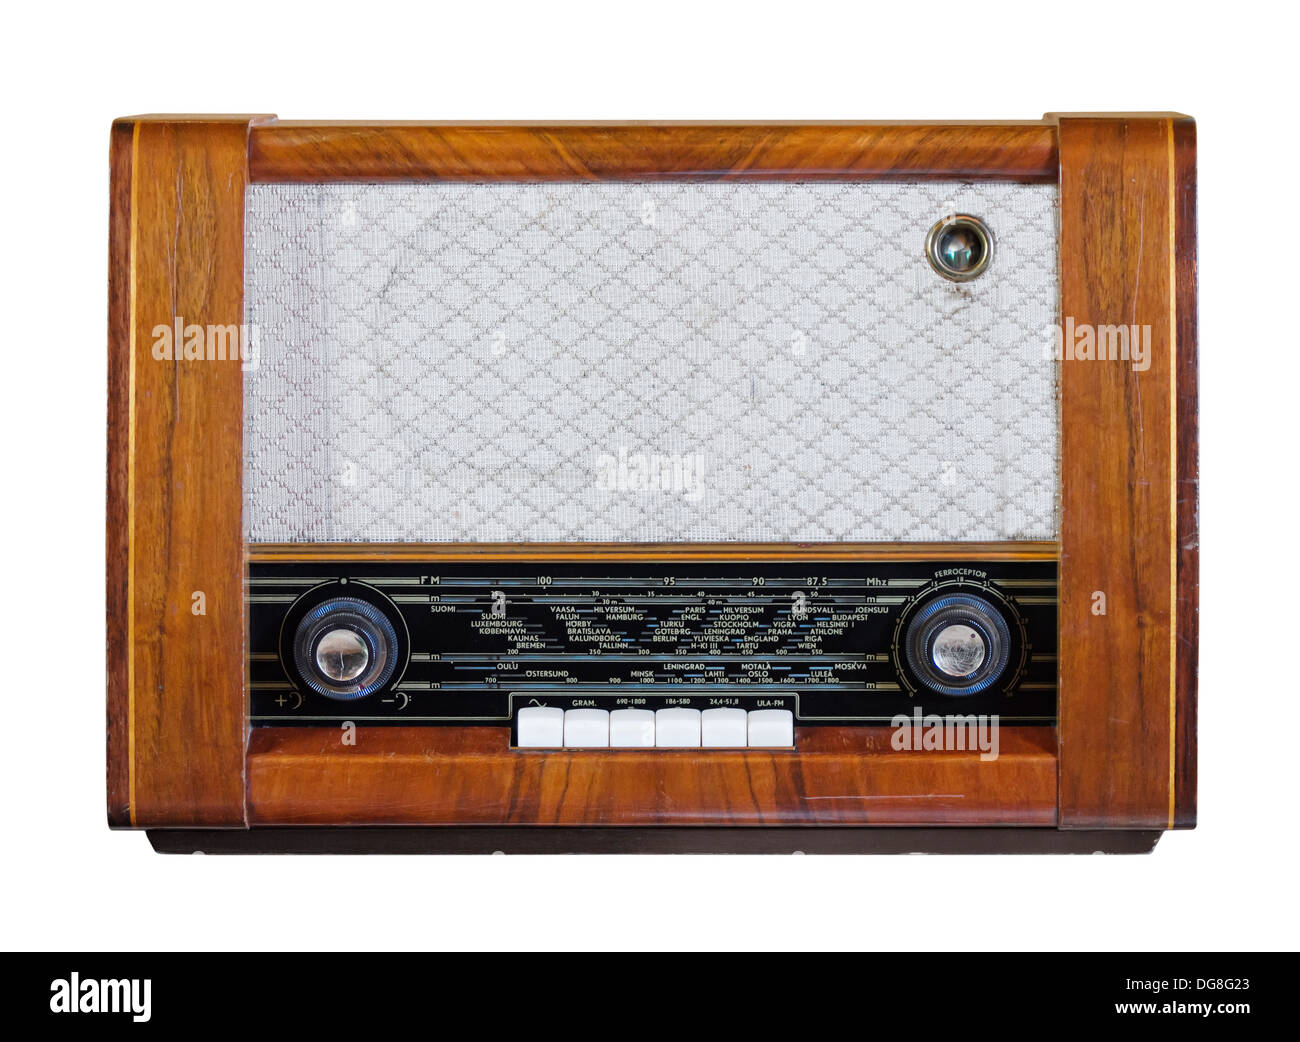 Old vintage radio from the 1950s isolated over white - Stock Image